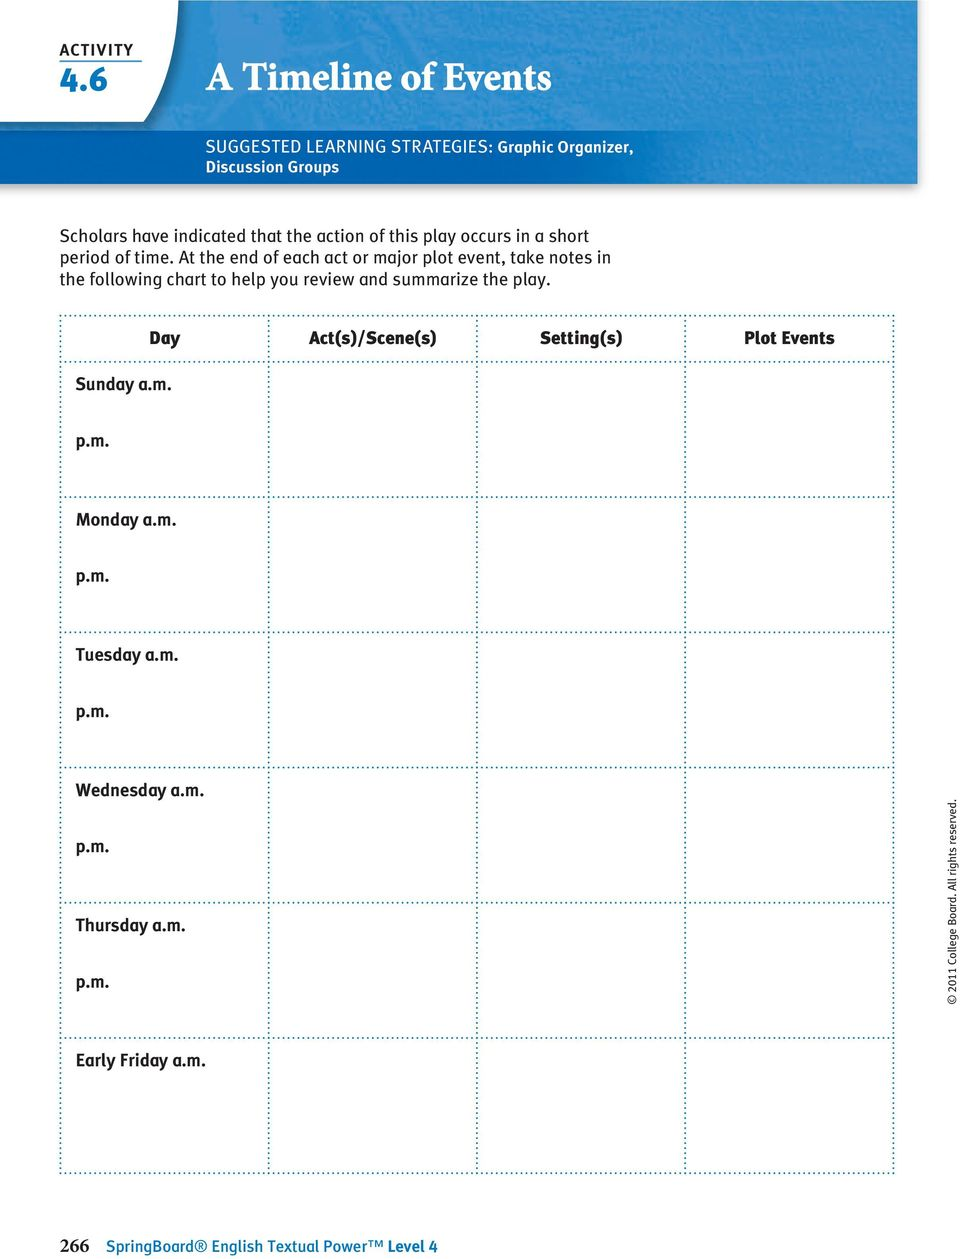 worksheet Romeo And Juliet Timeline Worksheet performance interpreting drama through unit overview action of this play occurs in a short period time